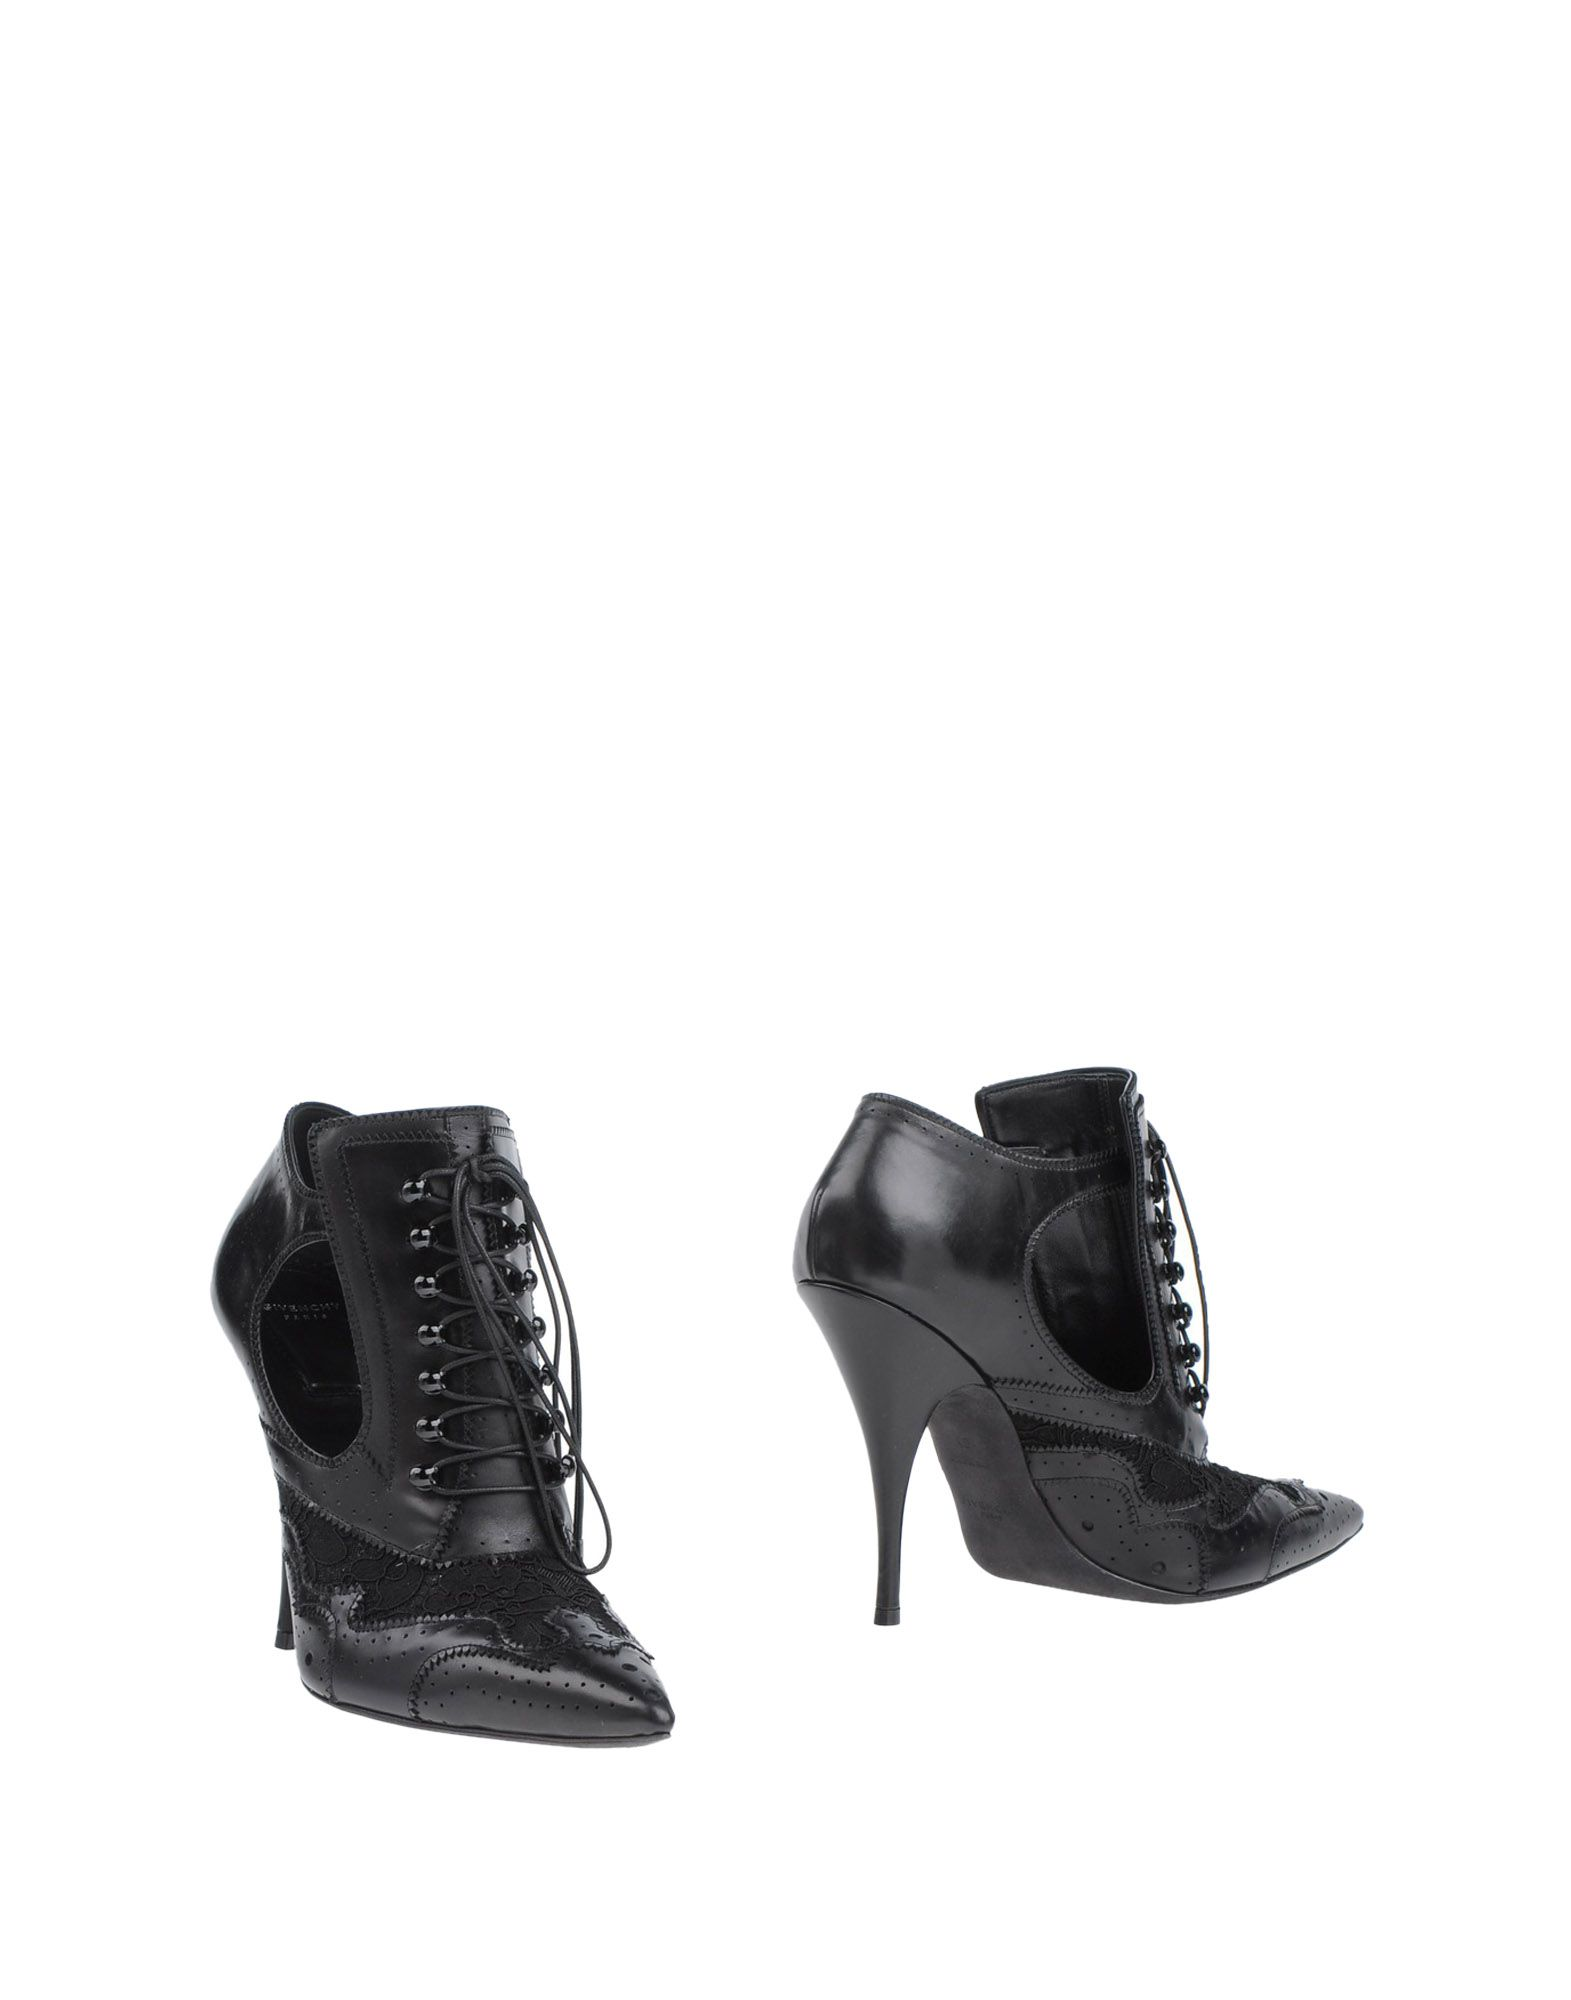 af7c4d2c4 Givenchy Ankle Boot - Women Givenchy Ankle Boots online on YOOX ...